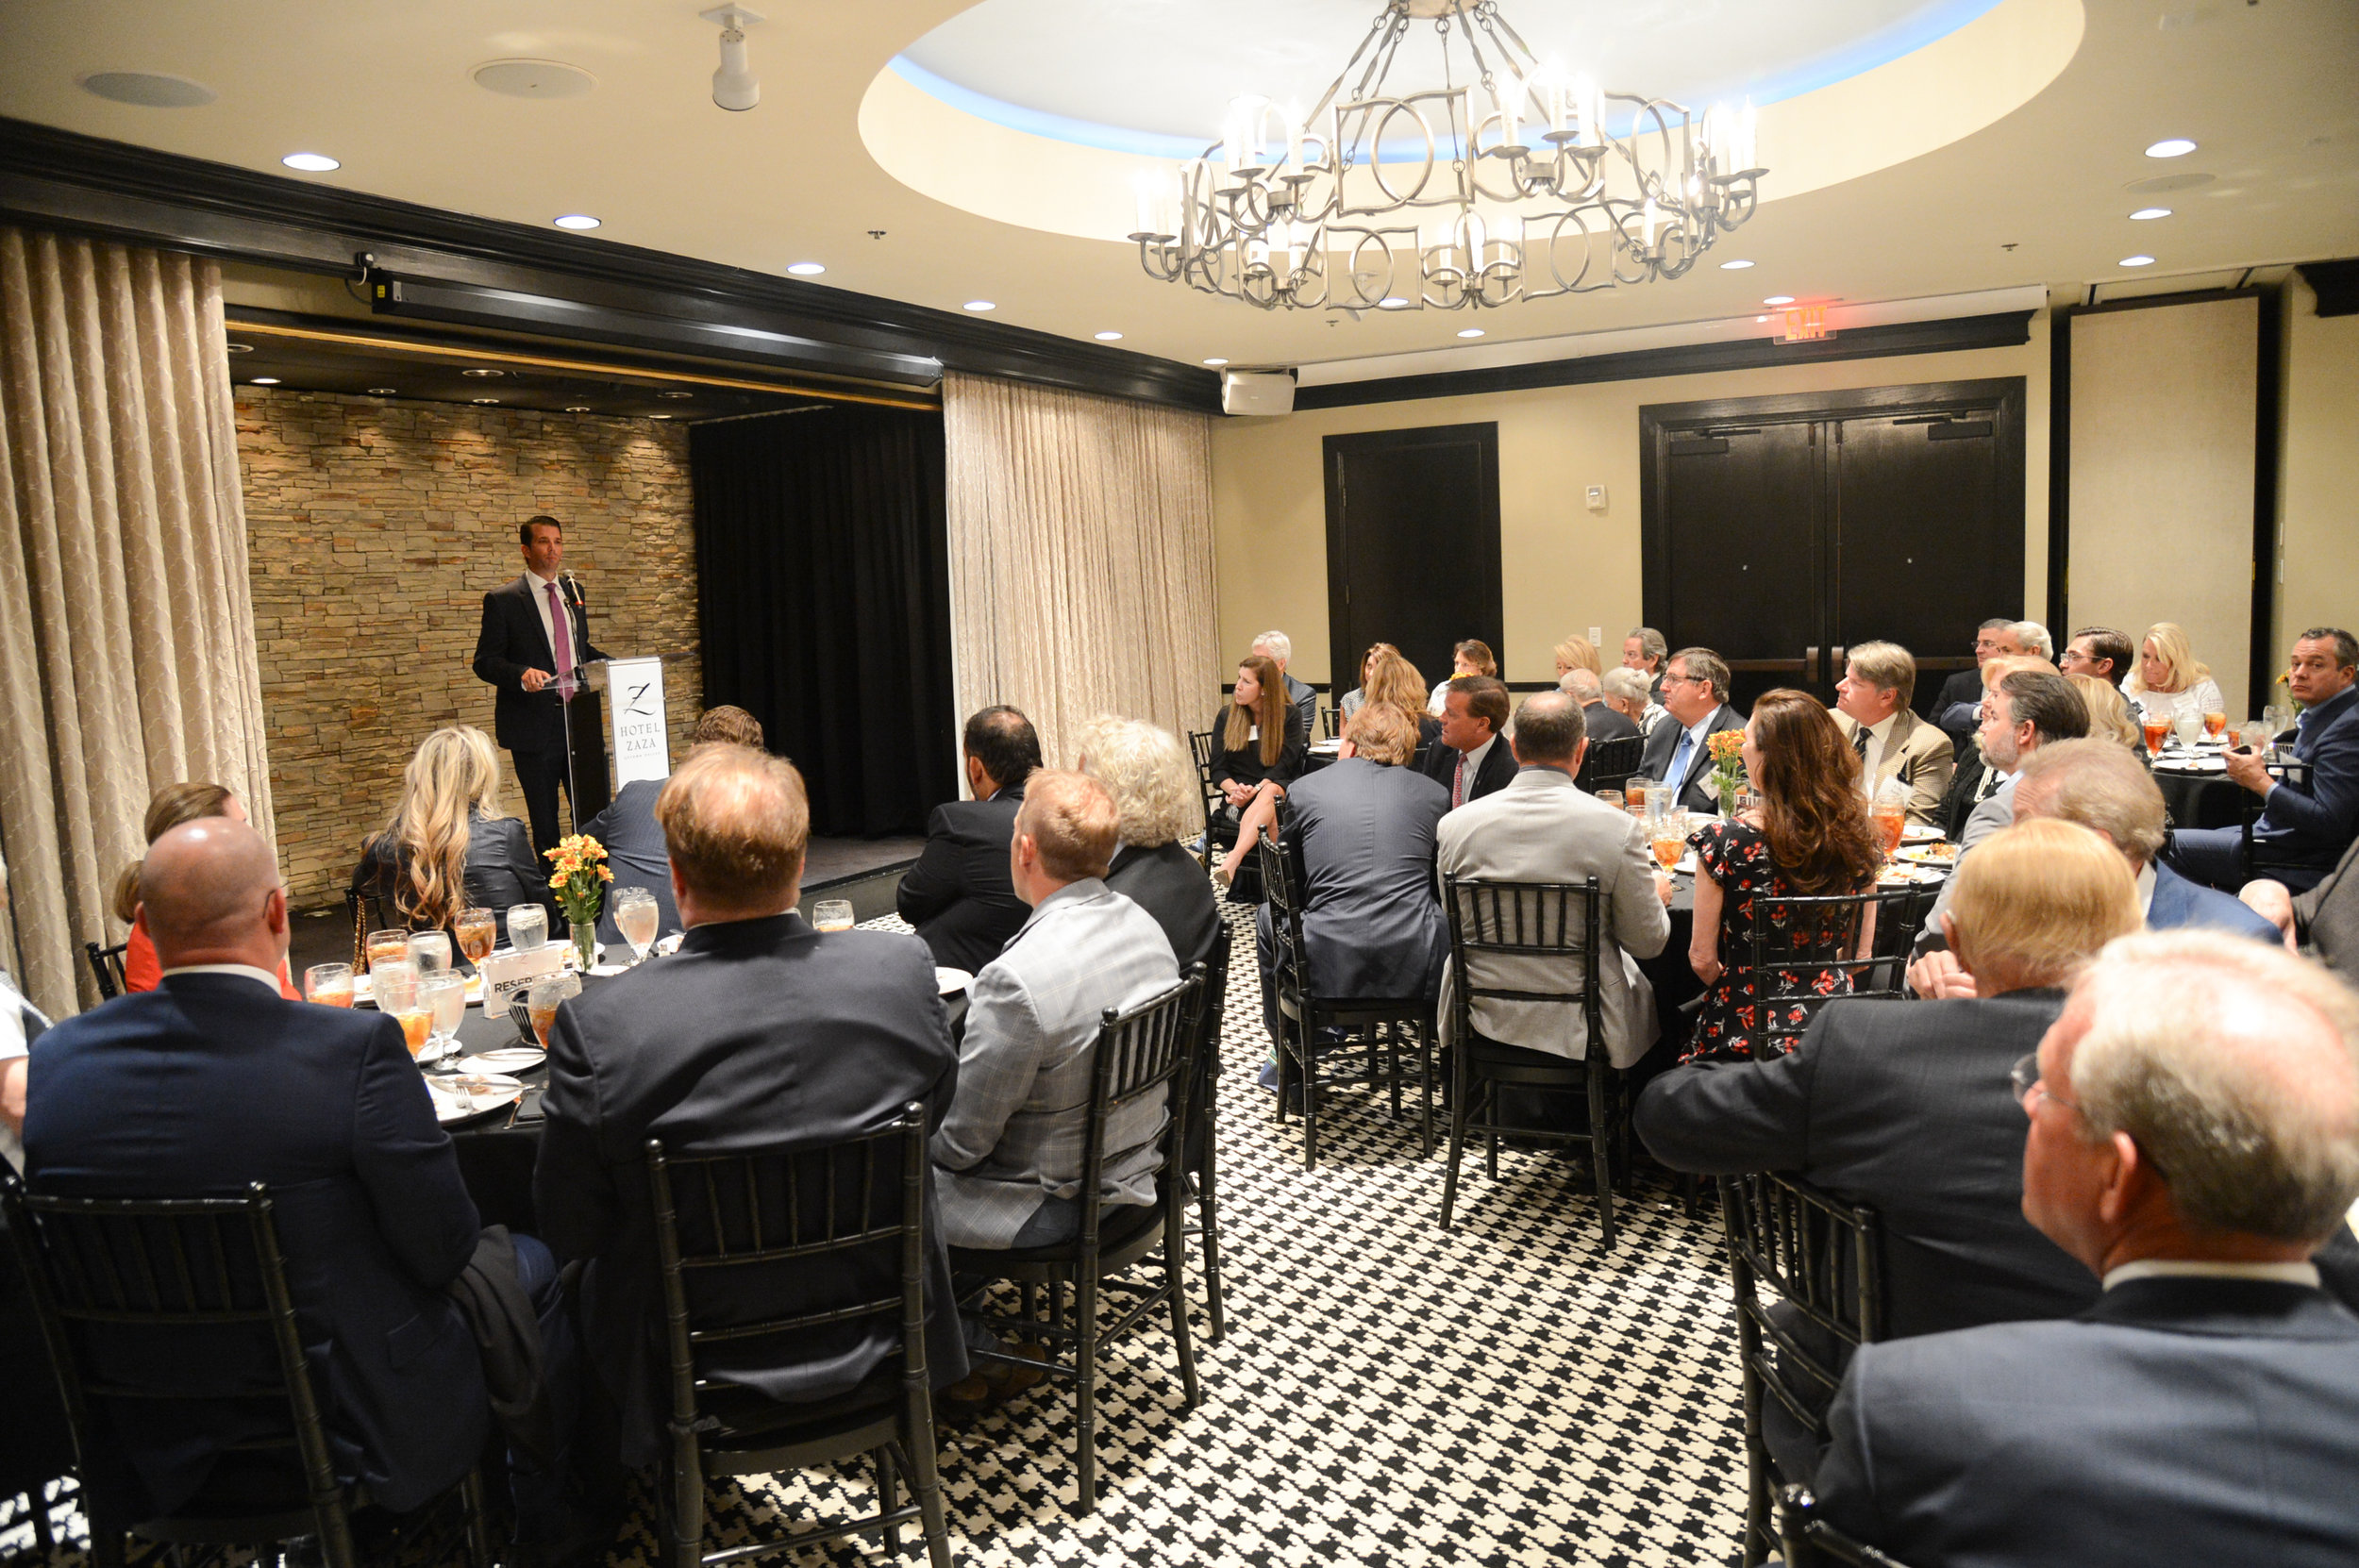 Donald Trump, Jr. speaks with supporters at a Dallas luncheon in 2016.